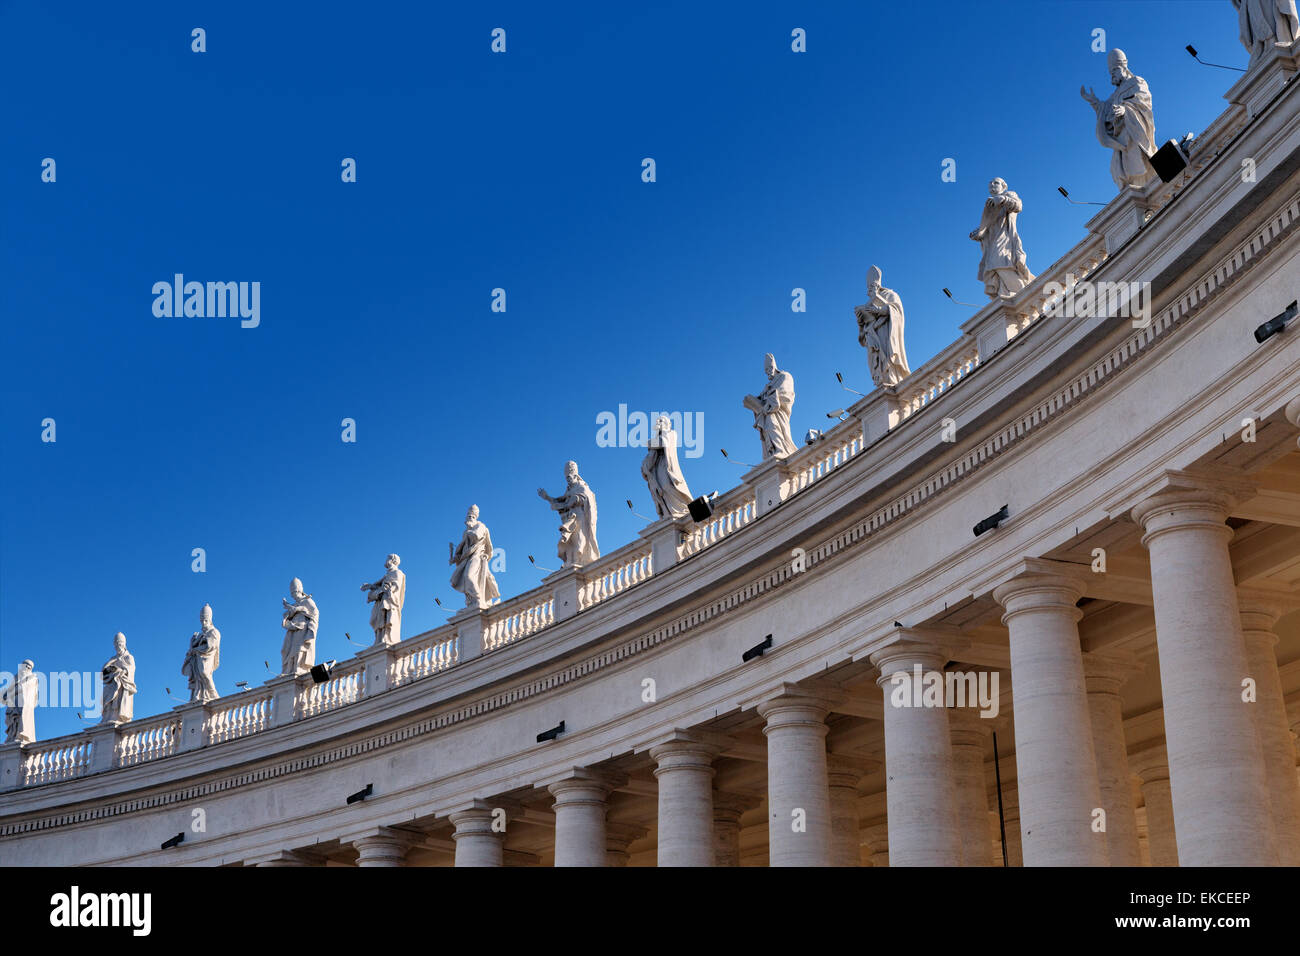 View of the top of the colonnade at St. Peters Tomb with statues of saints - Stock Image